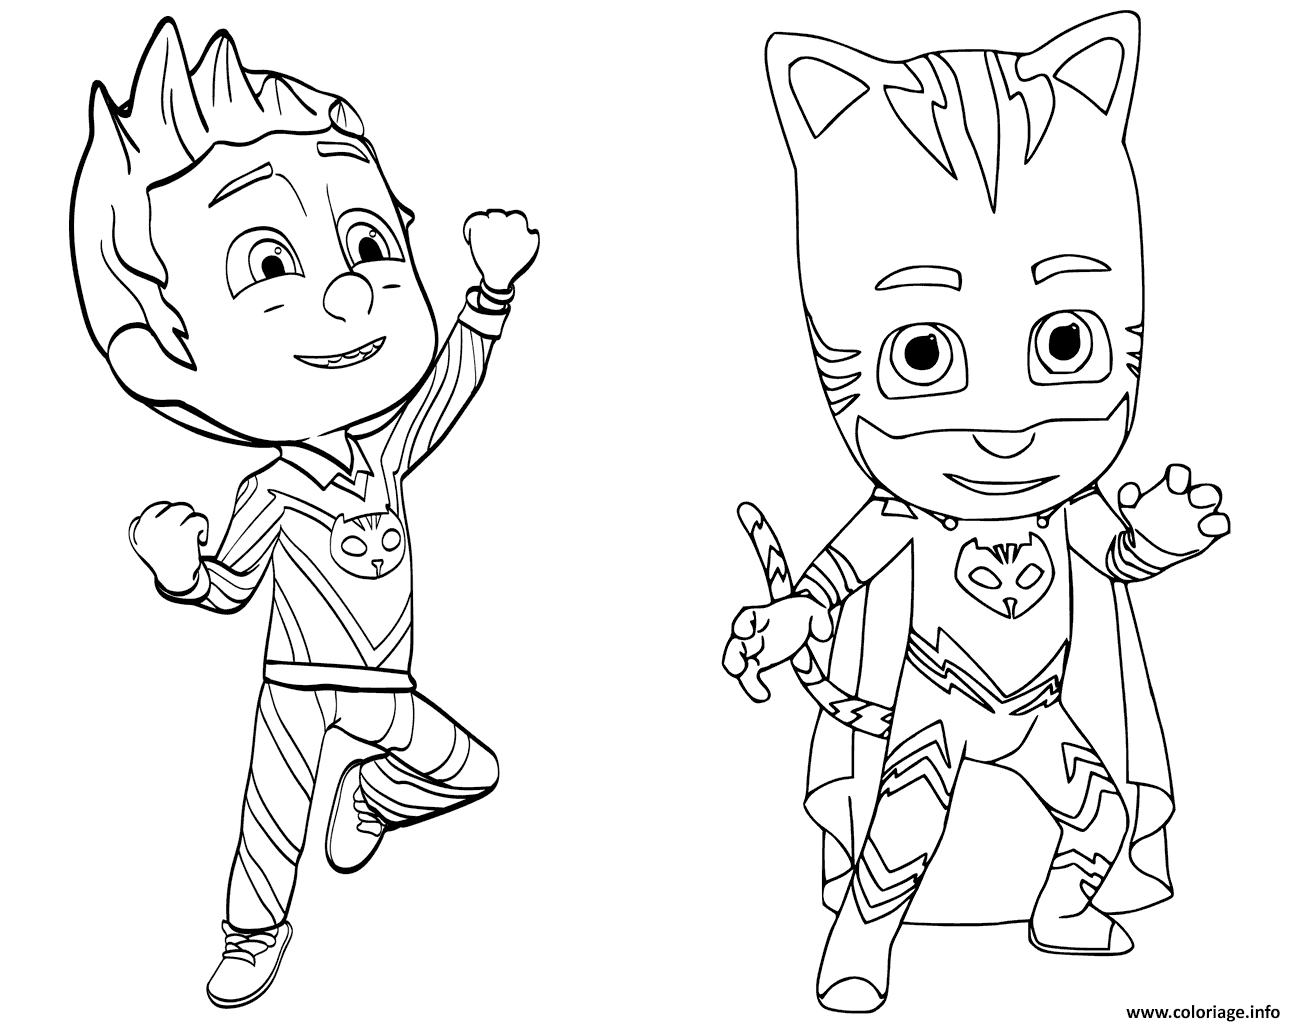 Coloriage Pajama Hero Connor Est Yoyo De Pyjamasques Jecoloriecom